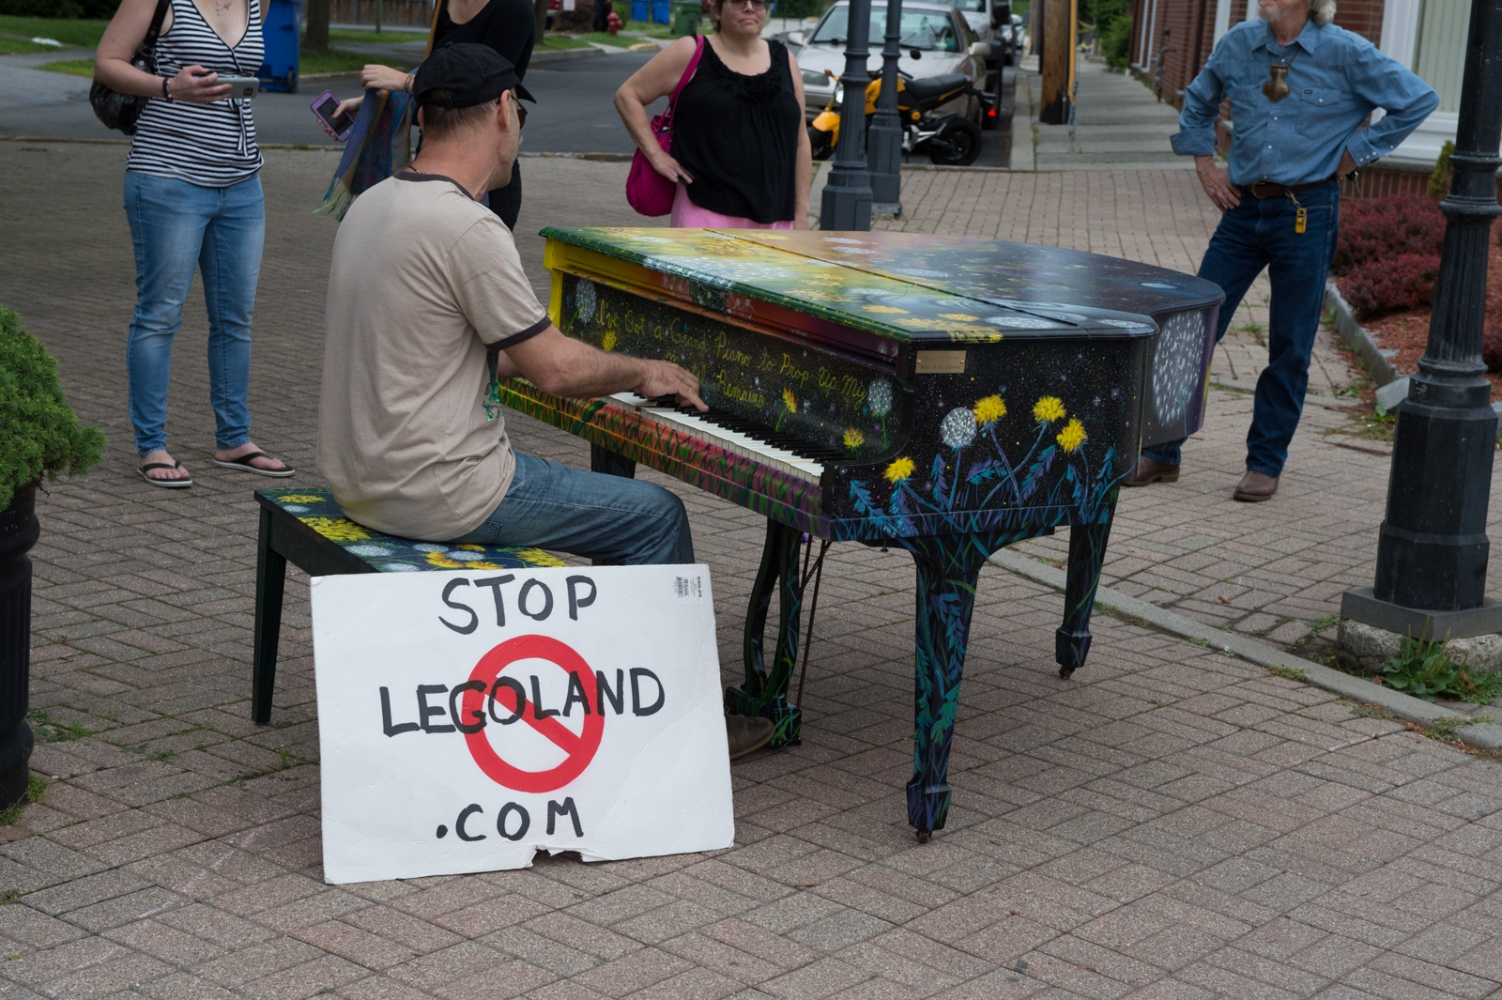 A few minutes after the launch, a local protestor puts down his sign, and has fun playing one of the pianos. Proof that art and music crosses all divides, perhaps?